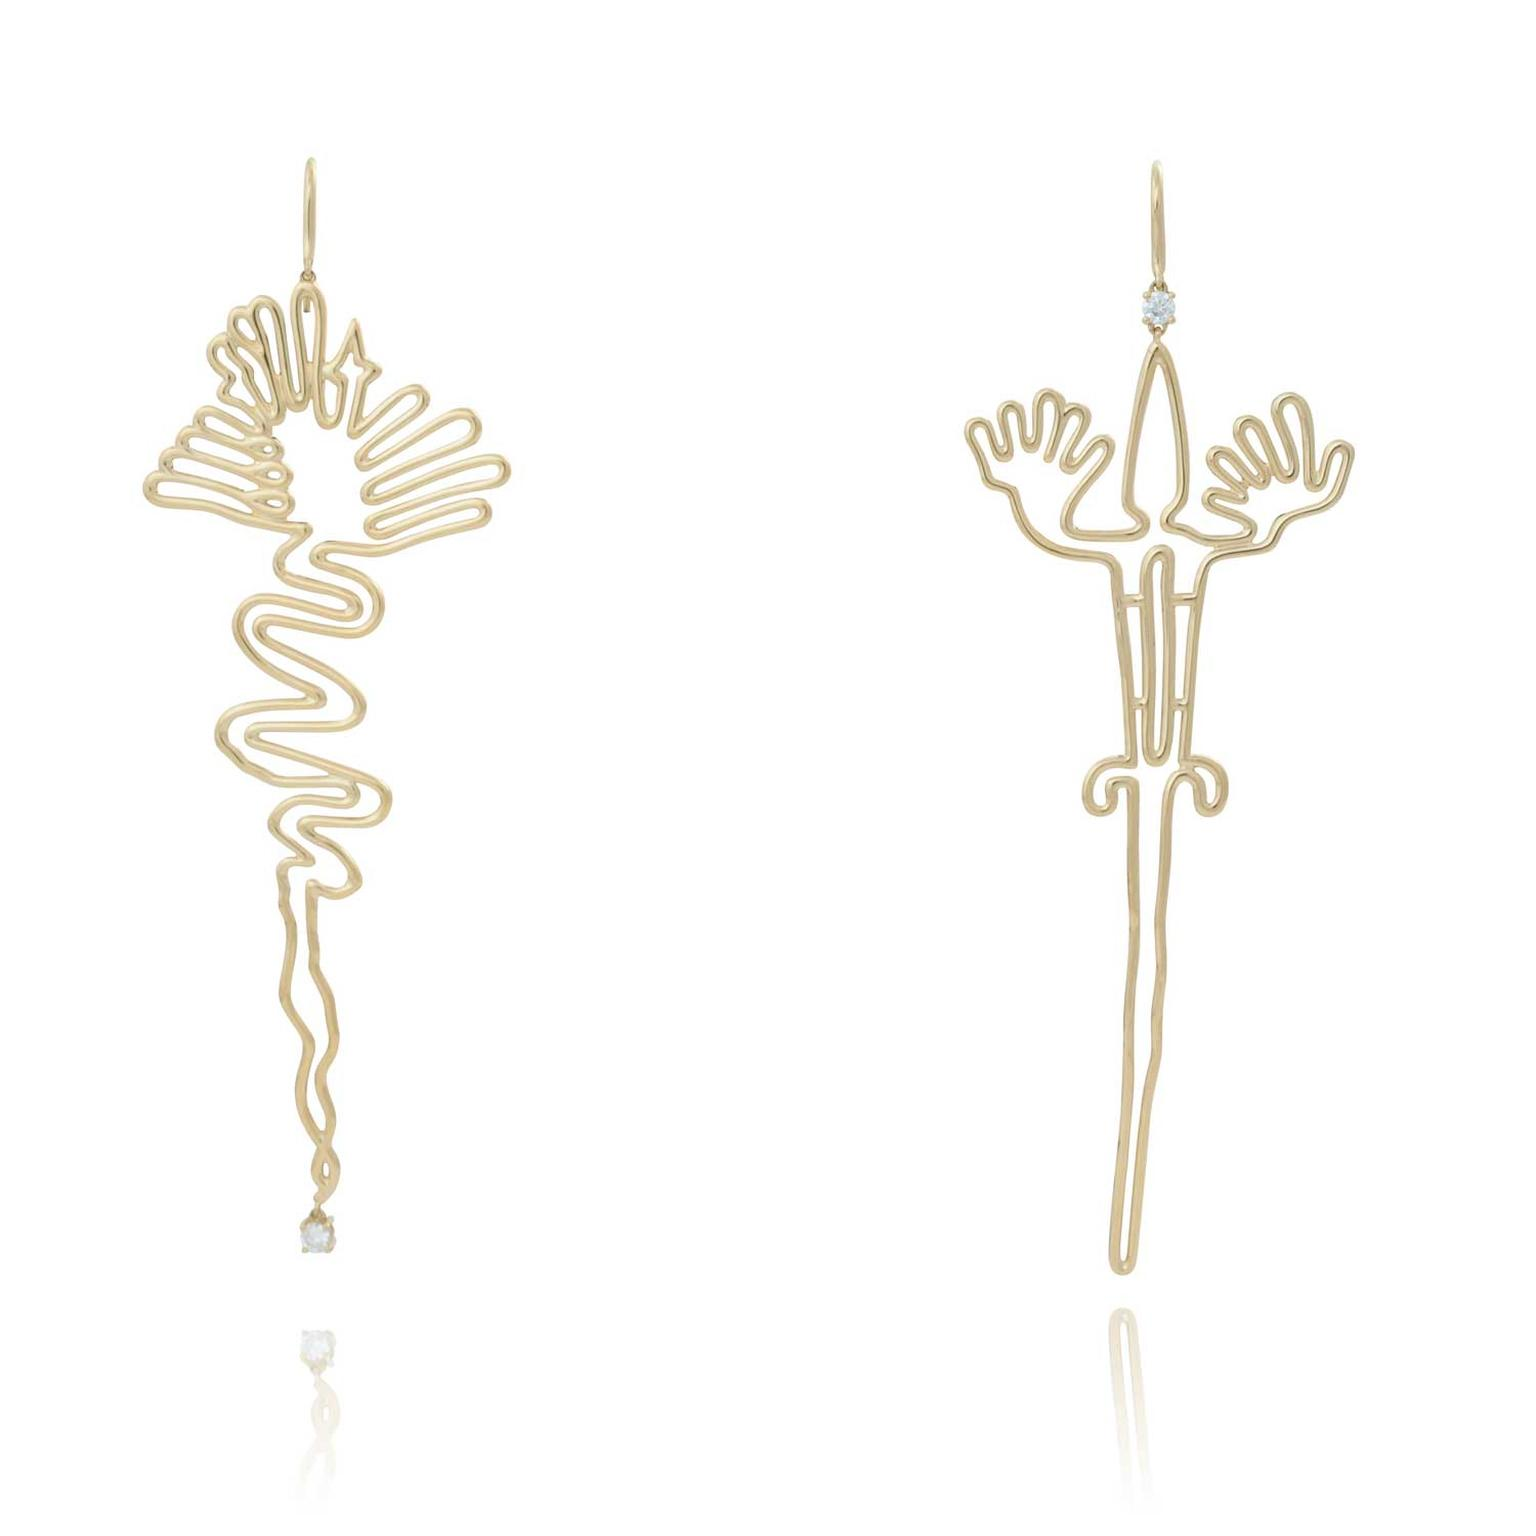 Lydia Courteille asymmetric Nazca earrings